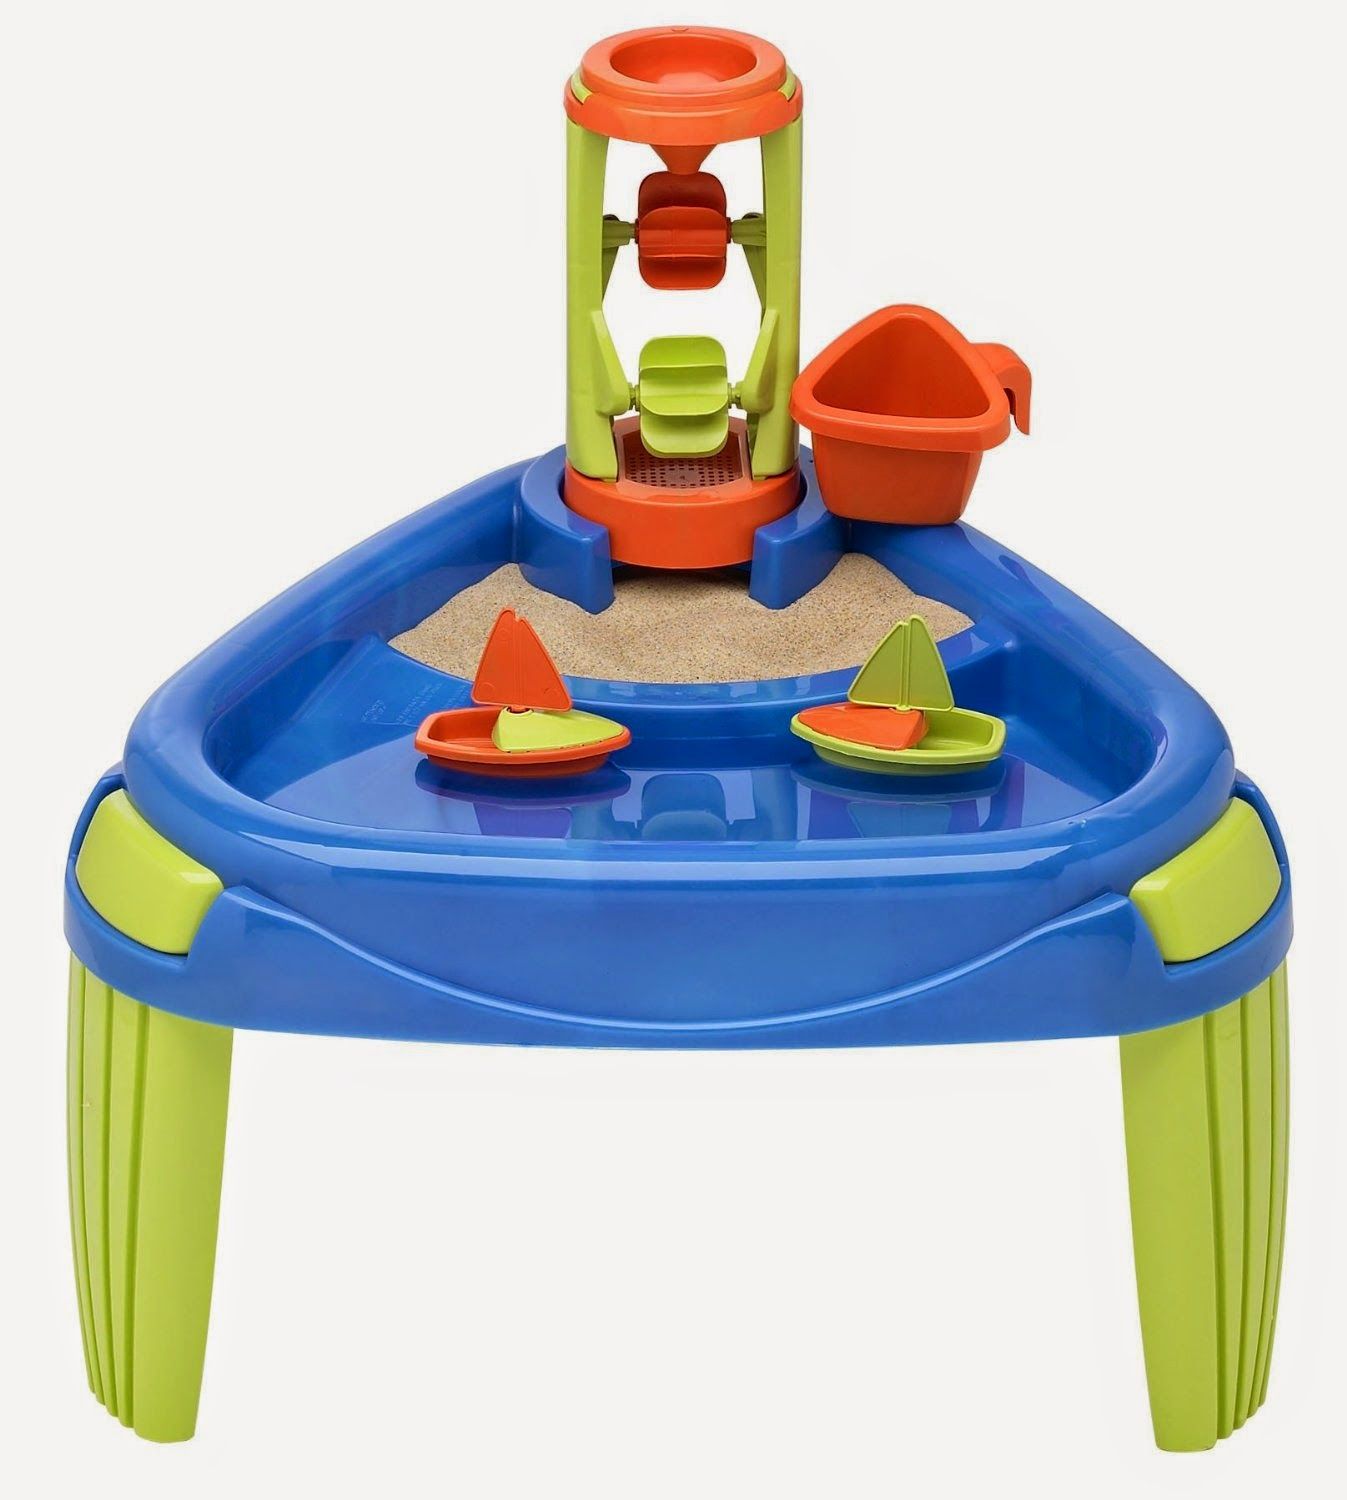 Get American Plastic Toy Water Wheel Play Table for $22.99!  (Reg. $29.99 ) + Other Water Toy Deals!